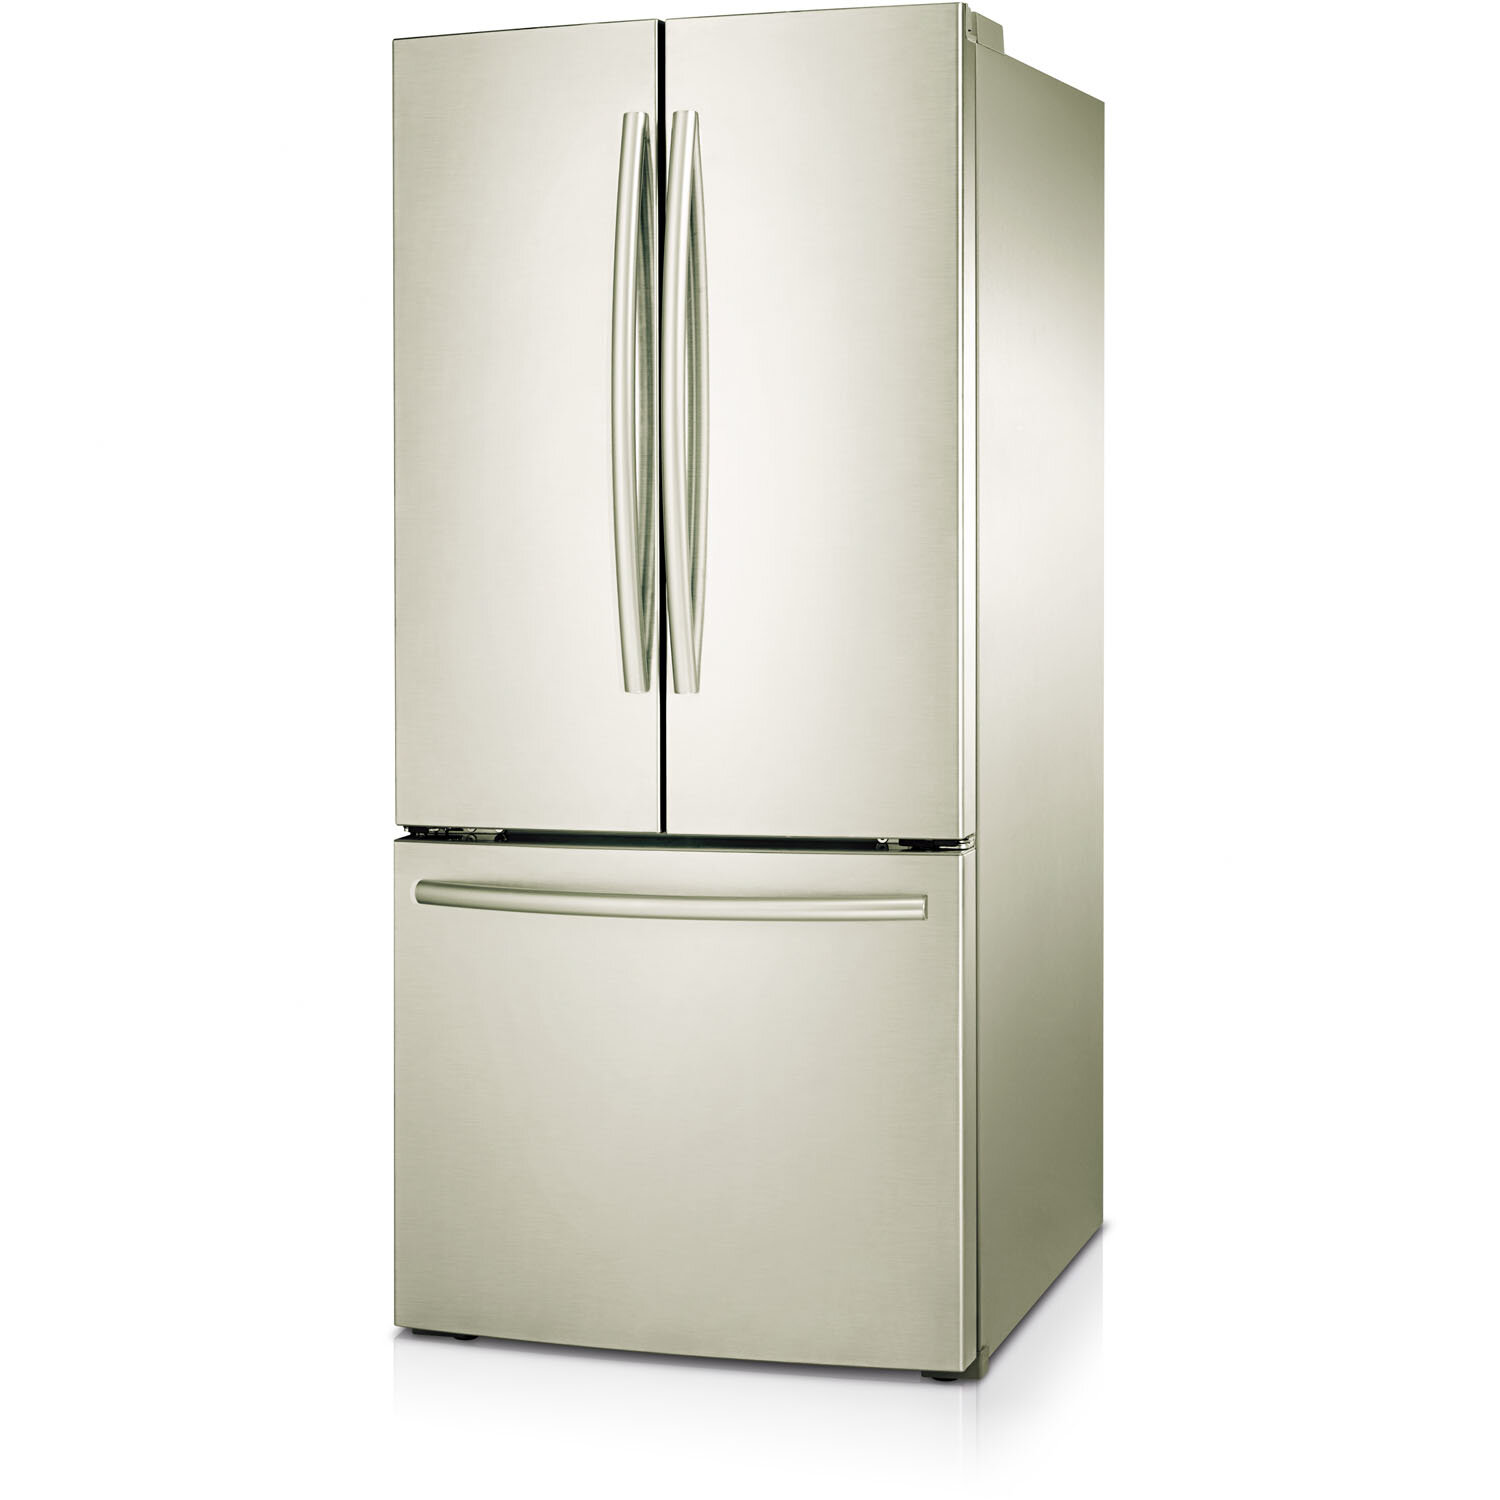 22 1 Cu Ft French Door Refrigerator: Large Refrigerator Stainless Ice Maker 22 Cu. Ft. French